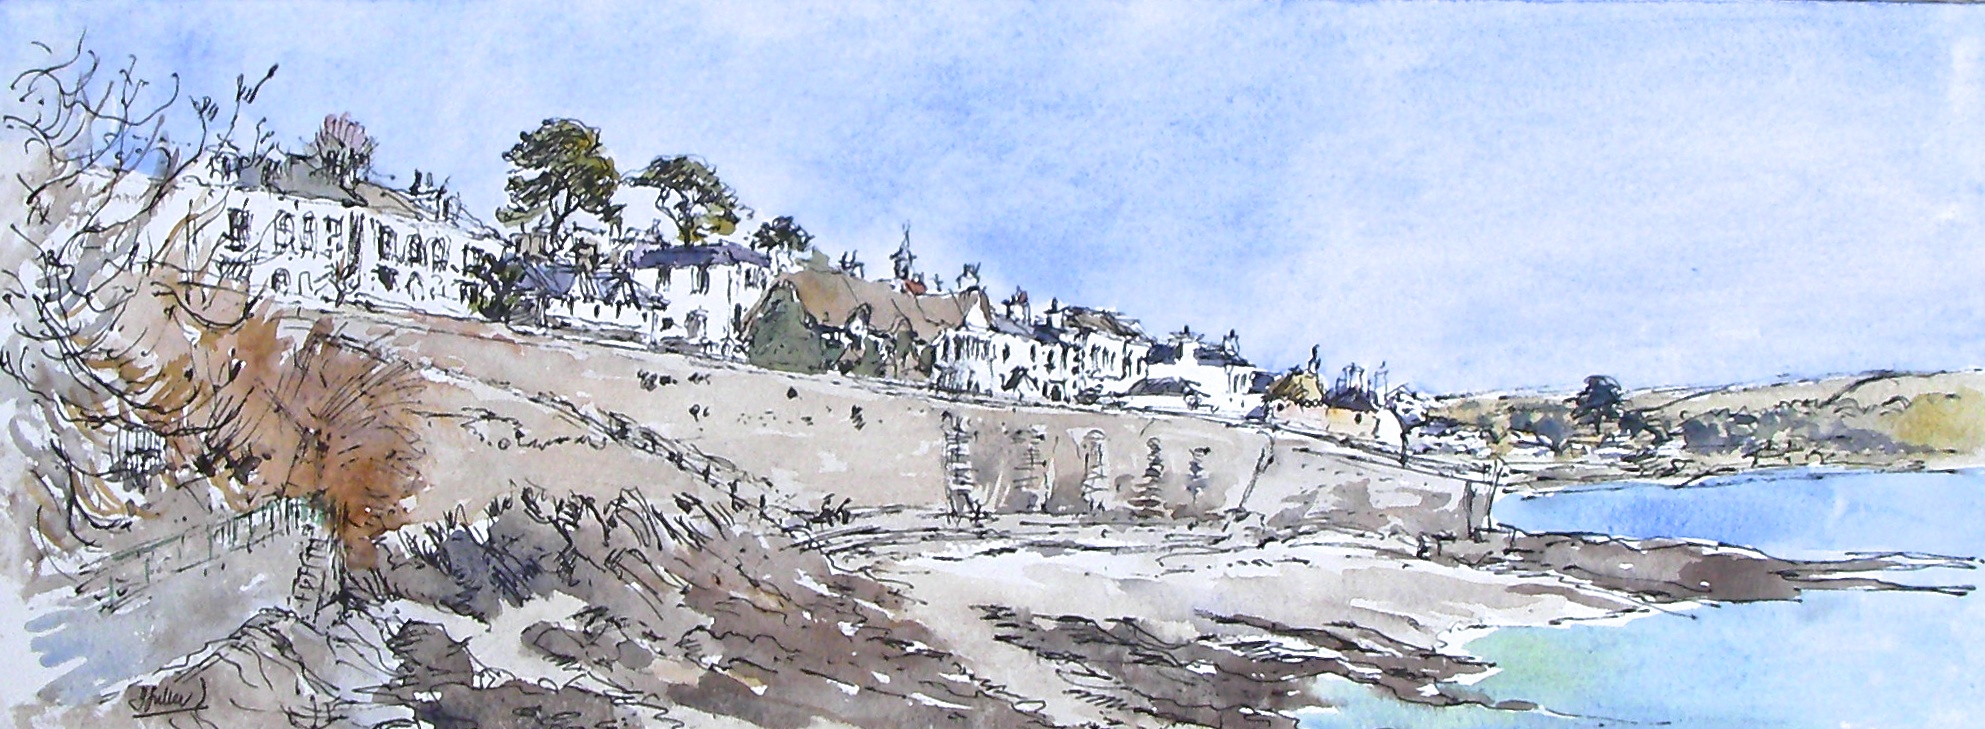 St Mawes Cottages above the great sea wall